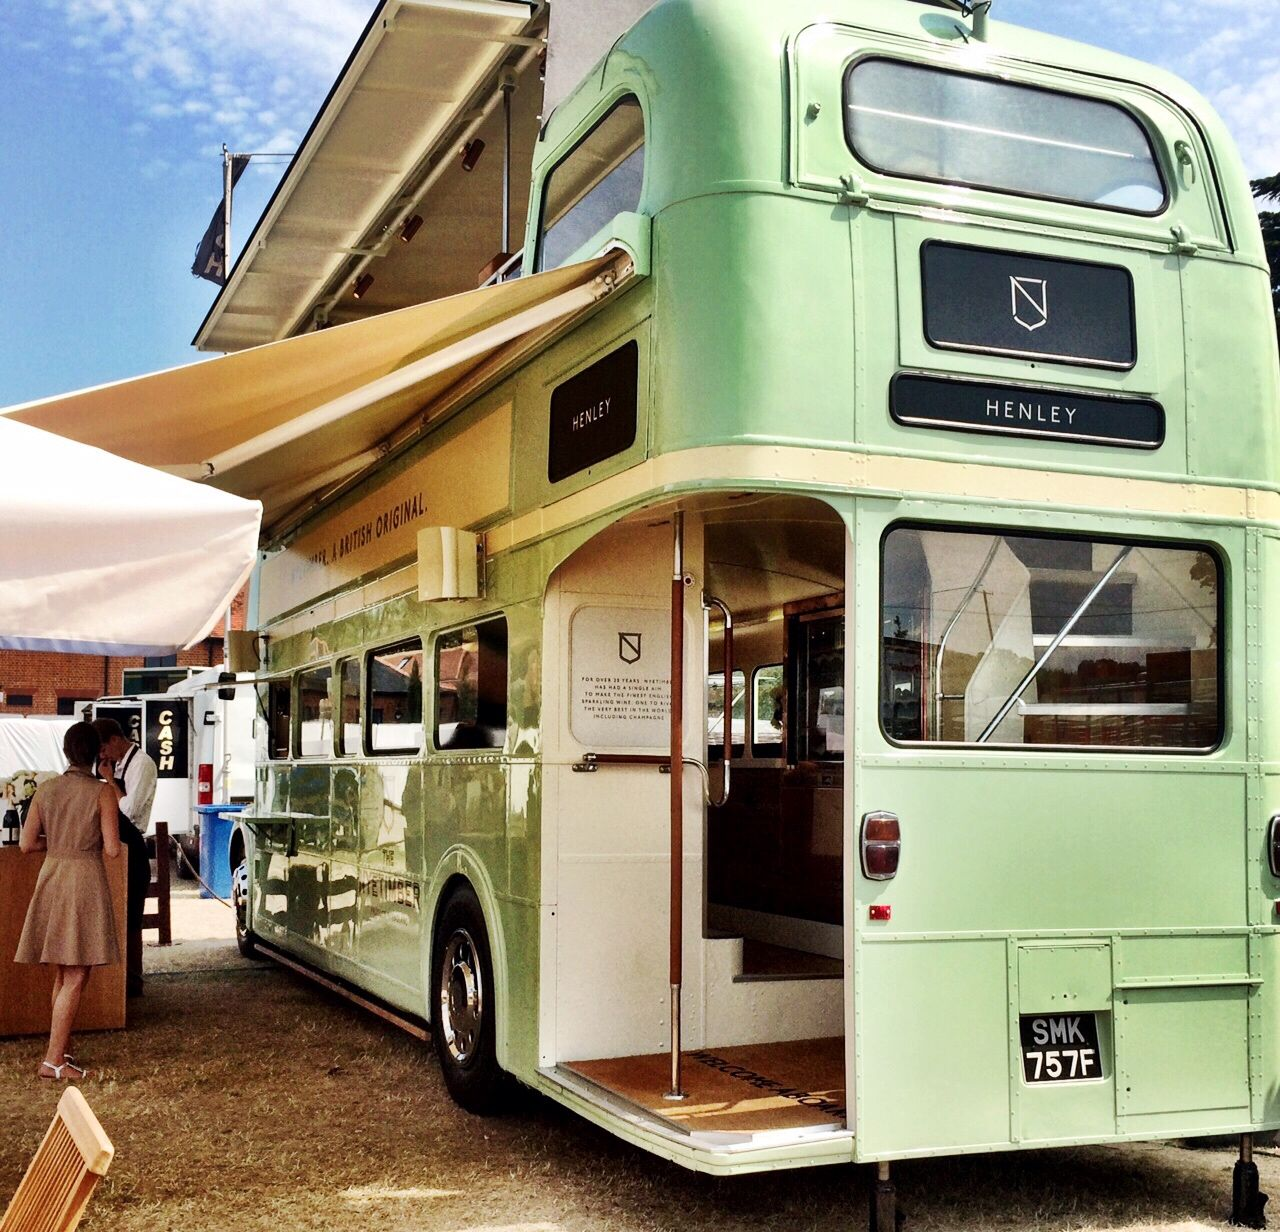 the back of a green vintage open top bus, with a pull out awning